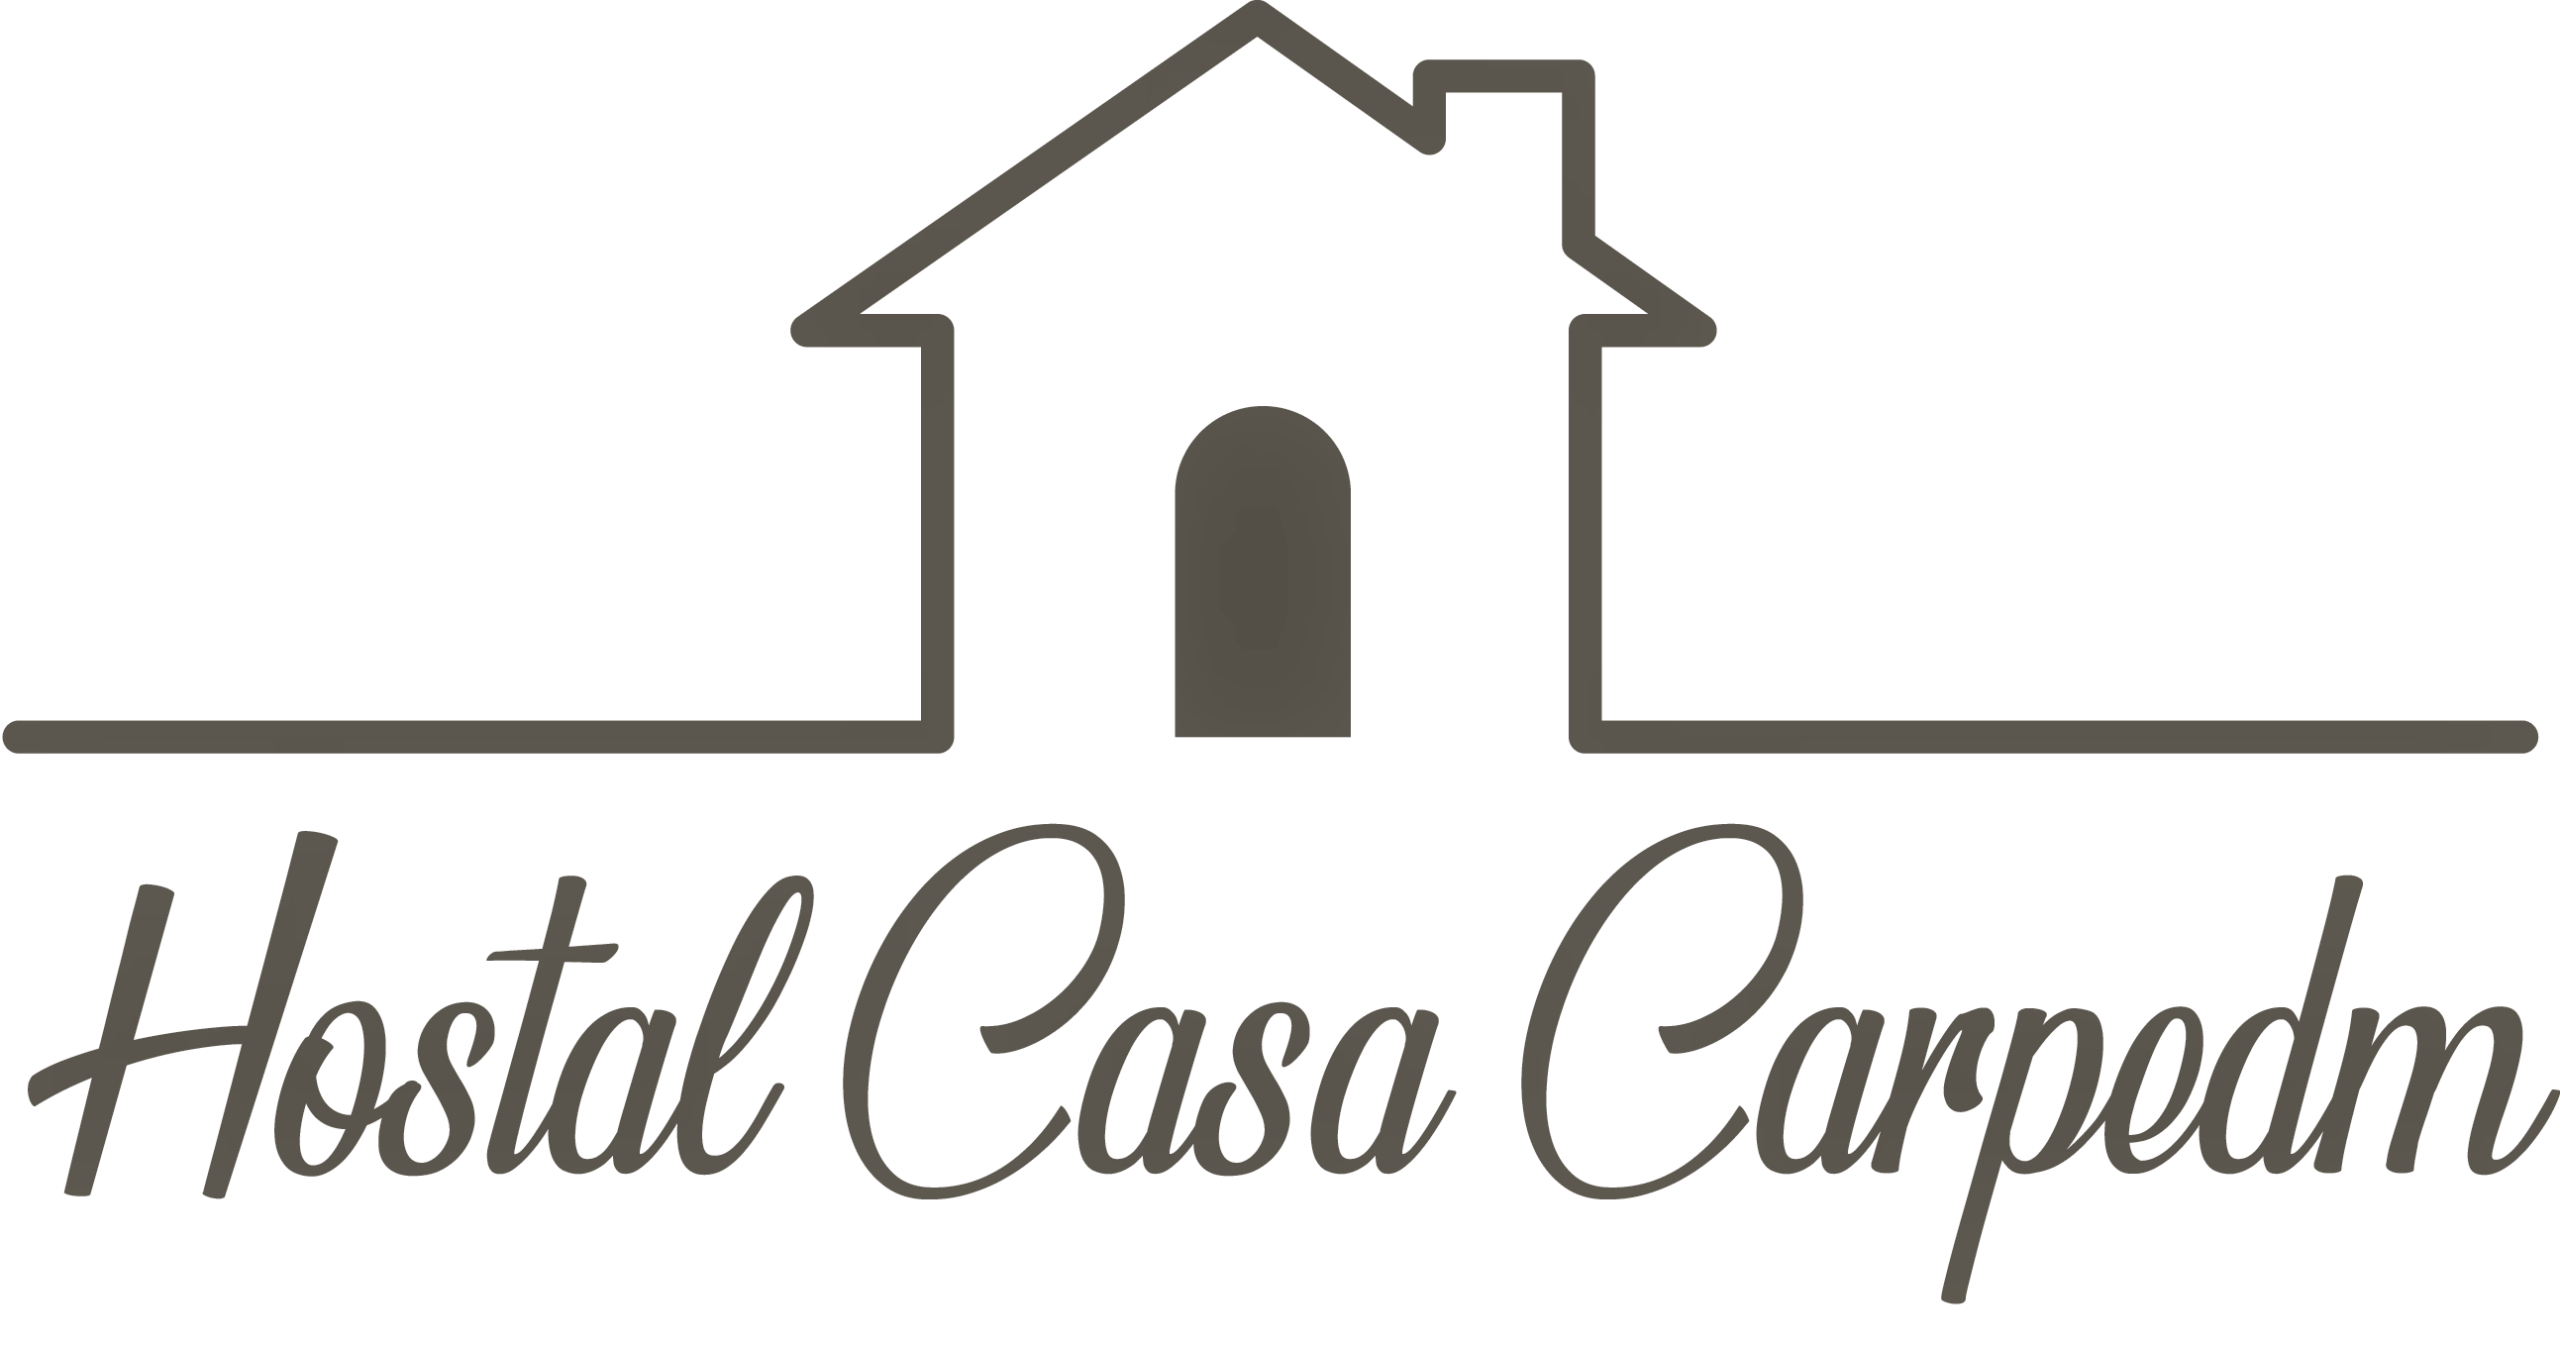 Casa CarpeDM Quito Hostel